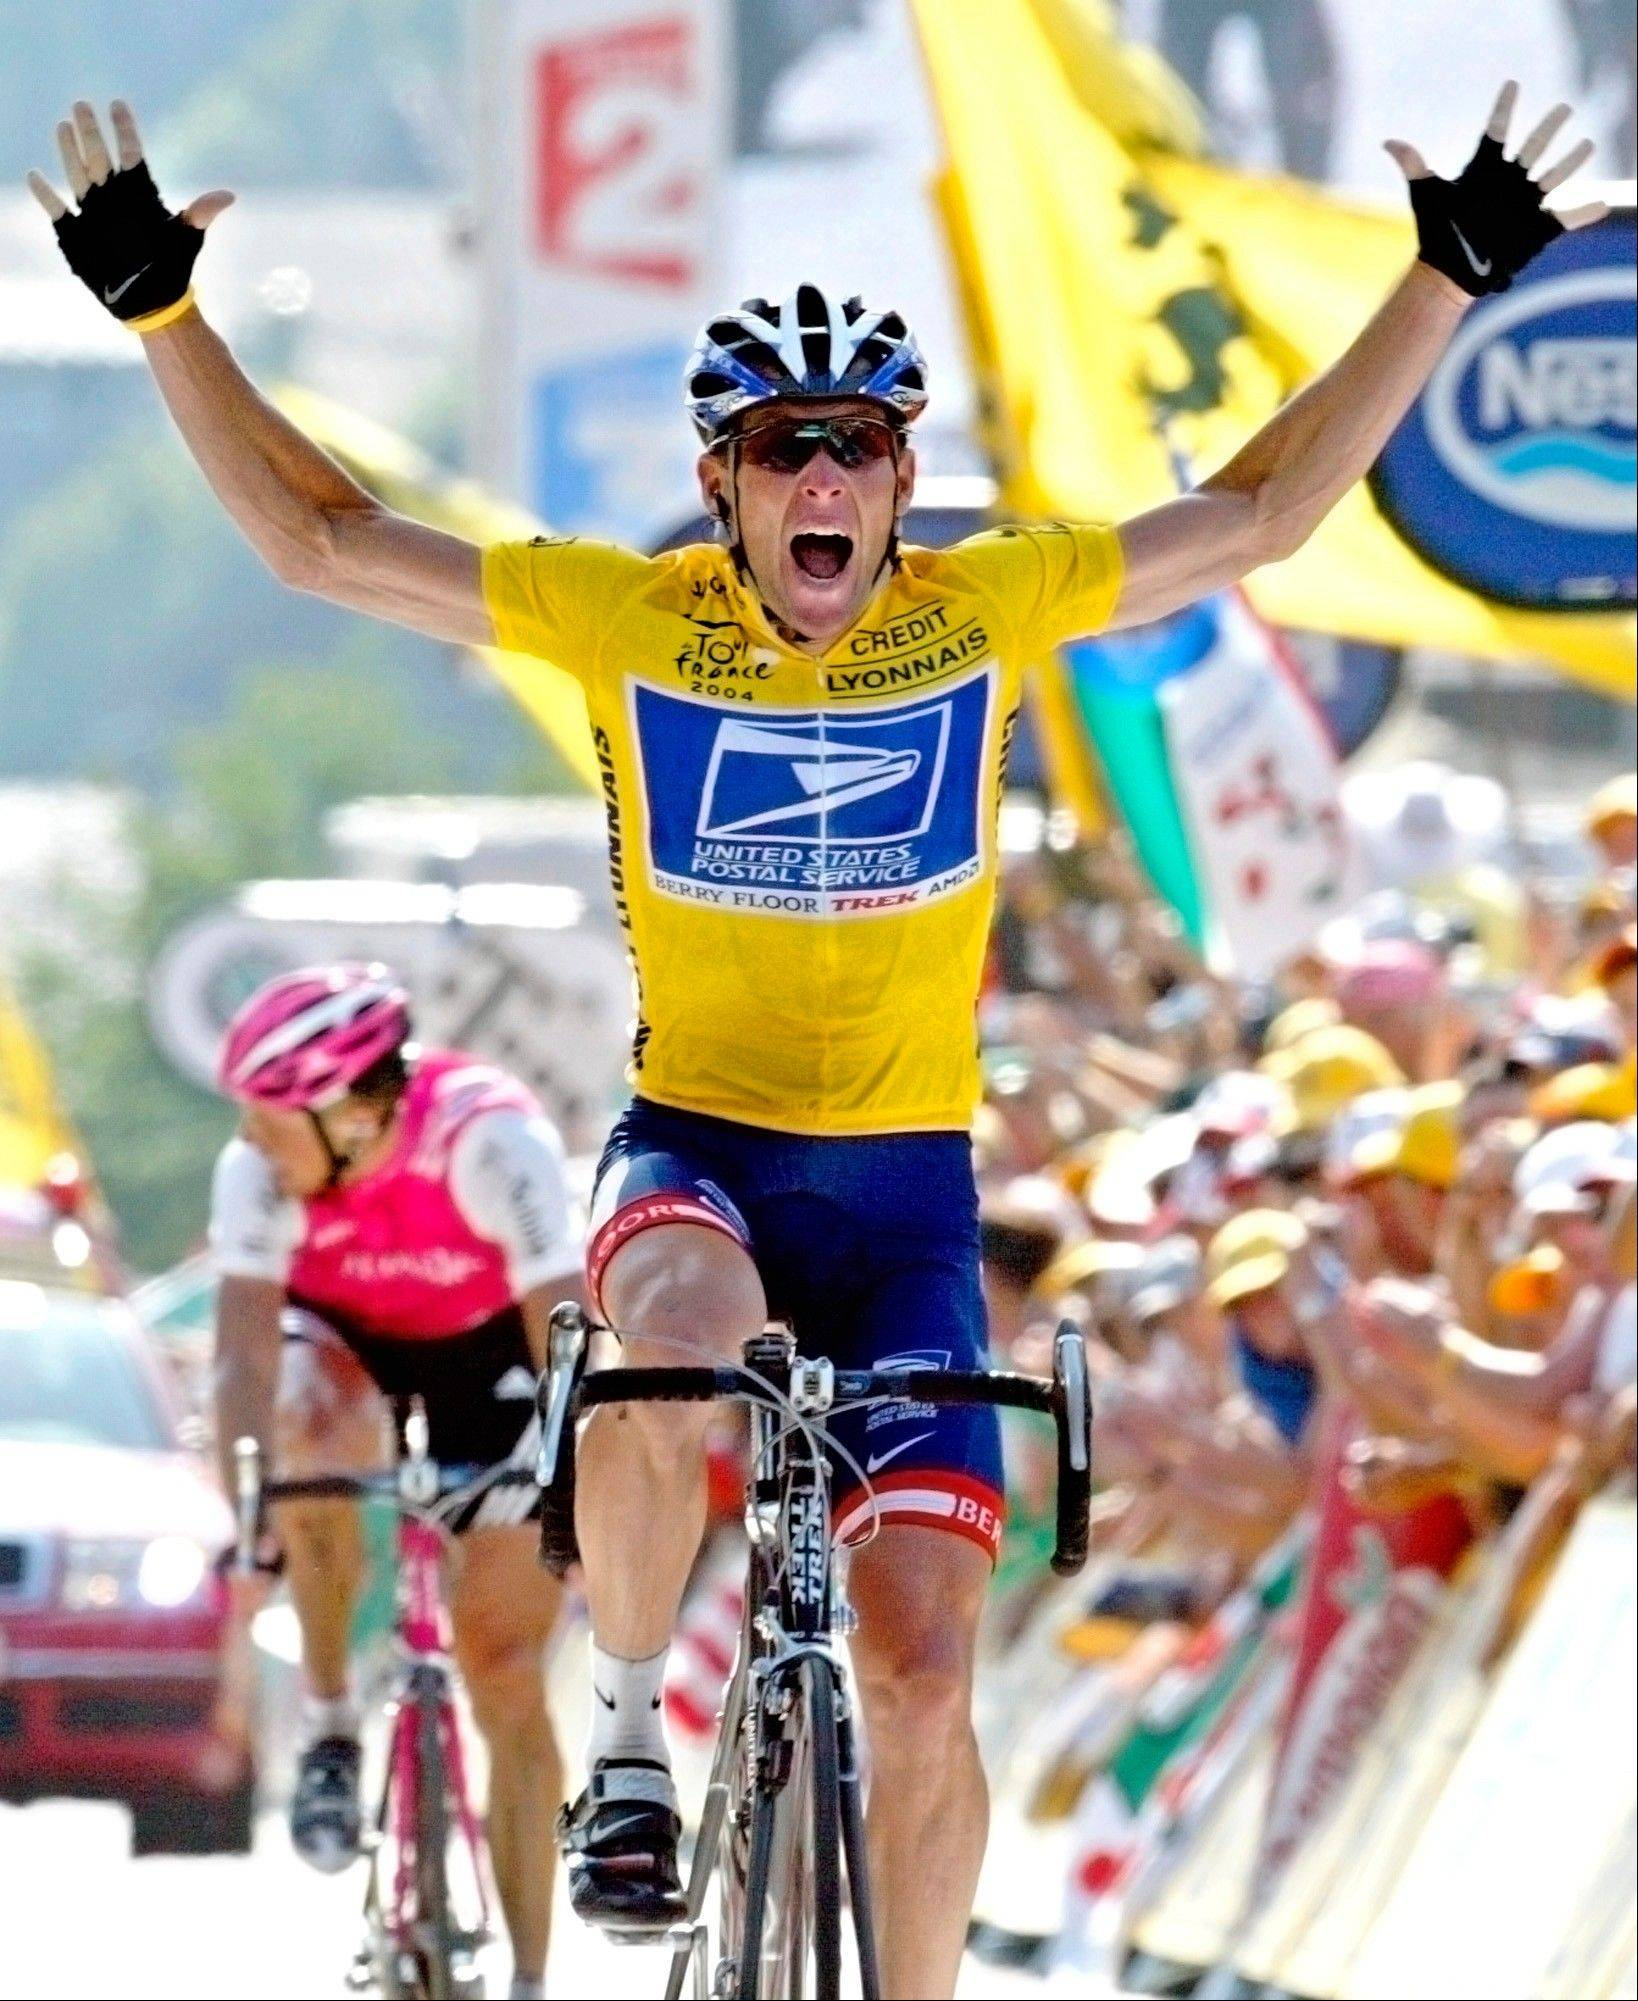 In this July 22, 2004, file photo, overall leader Lance Armstrong reacts as he crosses the finish line to win the 17th stage of the Tour de France cycling race between Bourd-d'Oisans and Le Grand Bornand, French Alps. Federal prosecutors said, Friday, Feb. 3, 2012, they are closing a criminal investigation of Armstrong and will not charge him over allegations the seven-time Tour de France winner used performance-enhancing drugs.